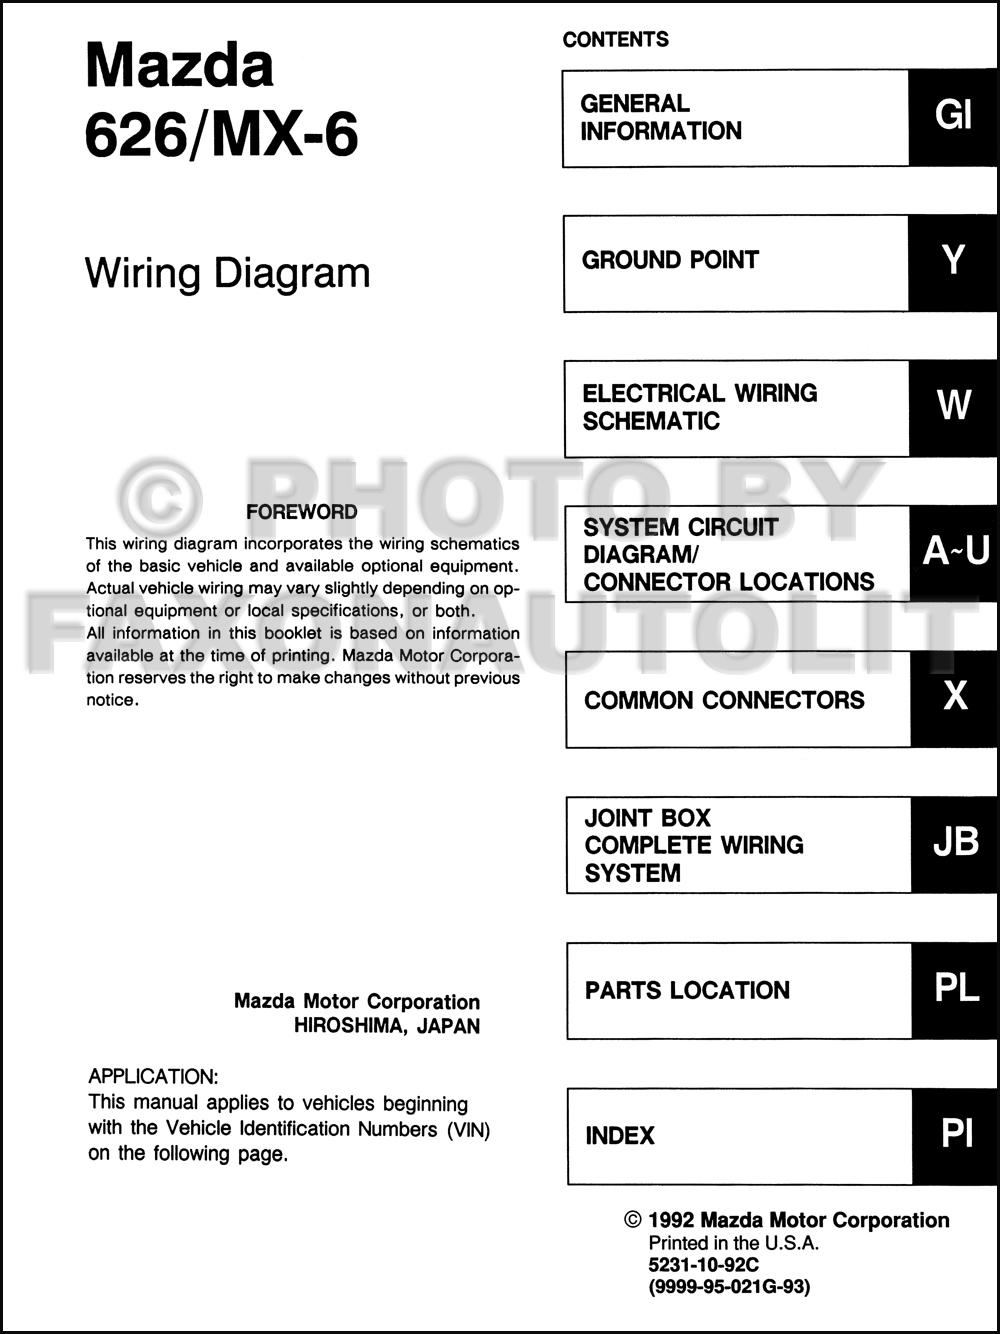 1993 Mazda 626 And Mx 6 Wiring Diagram Manual Original 6ls